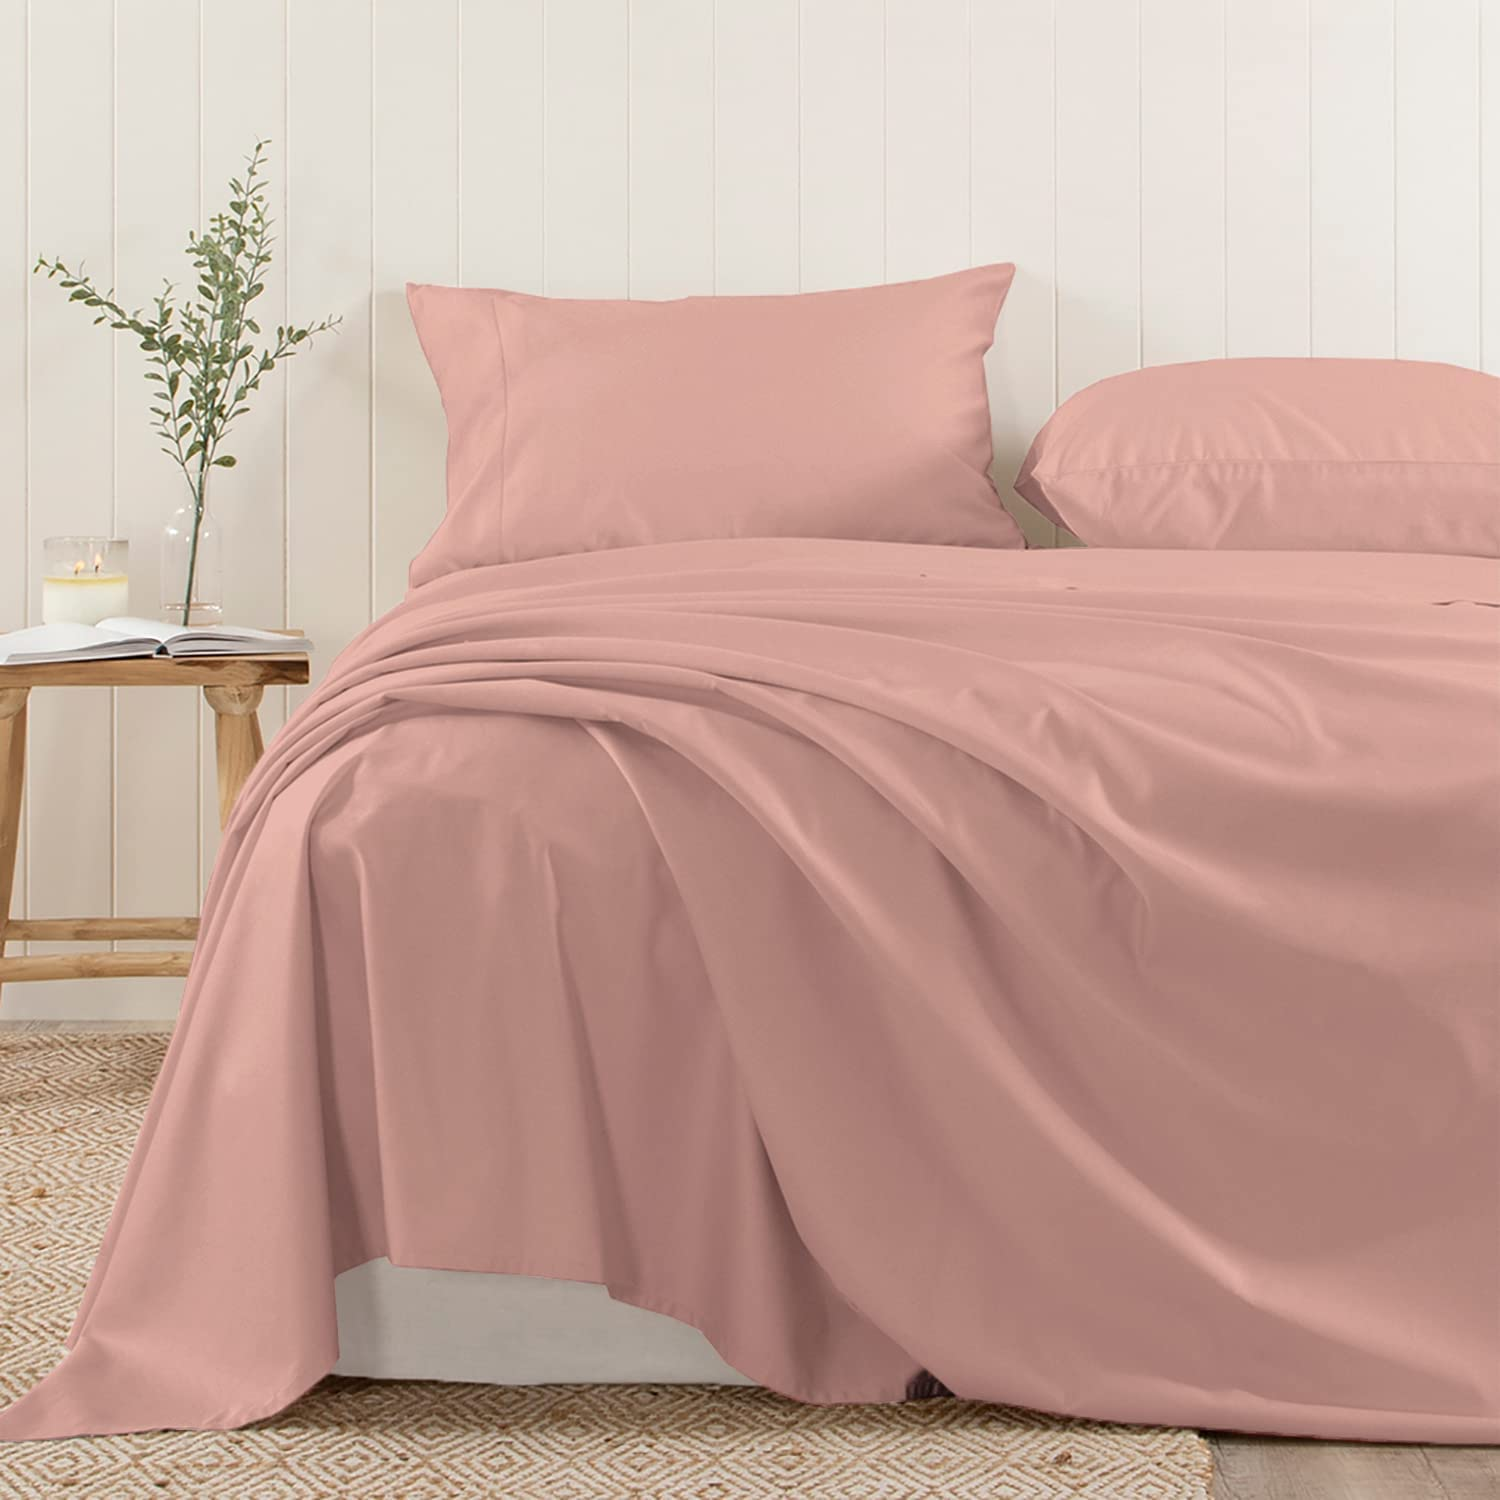 Pizuna Soft 400 Thread Count Ranking Challenge the lowest price of Japan TOP10 Cotton King Flat Rose 1 Sheets 1pc